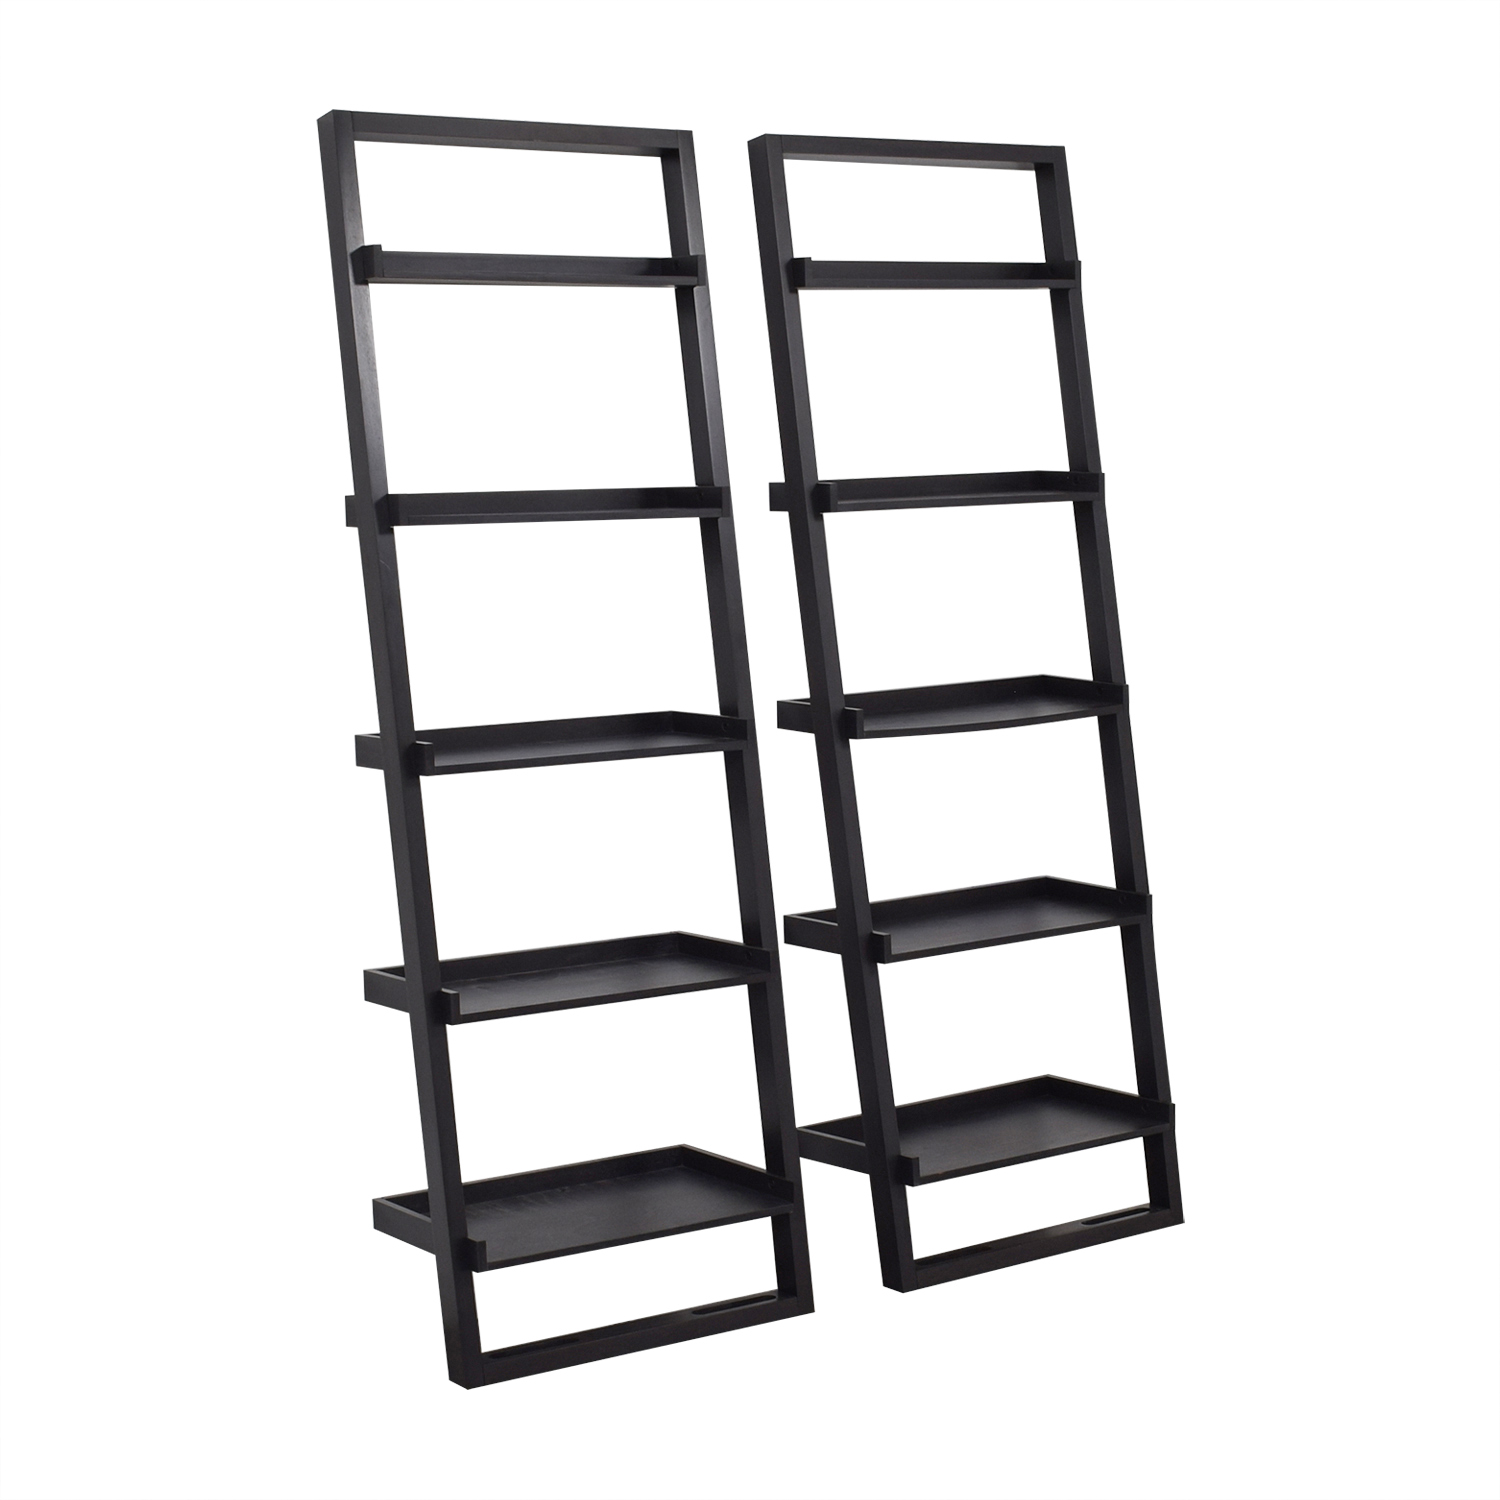 Crate & Barrel Crate & Barrel Black Leaning Bookshelves coupon